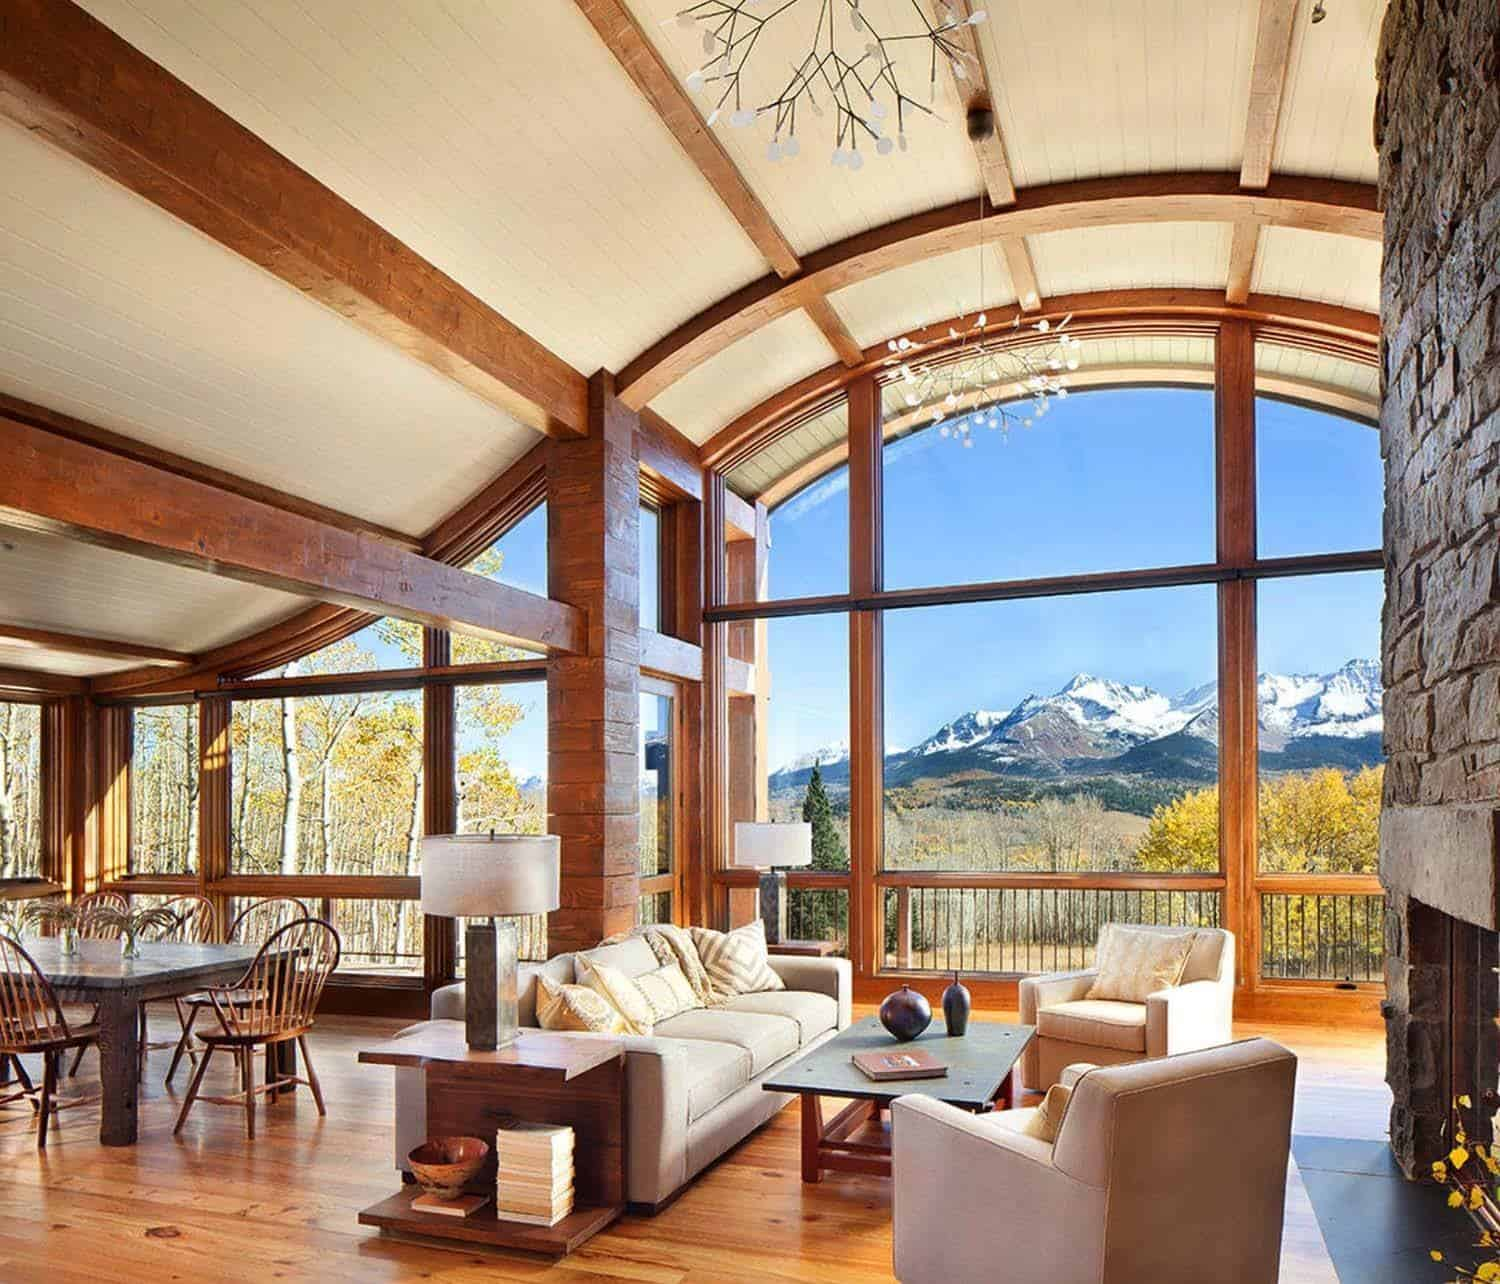 Colorado mountain cabin perfectly frames views of Mount Wilson on rogers interior design, magnolia interior design, white hall interior design, kalispell interior design, kimberly interior design, bozeman interior design, centerville interior design, eagle interior design, home and garden fireplace design, united states interior design, salem interior design, lewisville interior design, etsu interior design, augusta interior design, california mission style interior design, stanley interior design, general store interior design, ann arbor interior design, valley interior design, architectural rendering interior design,